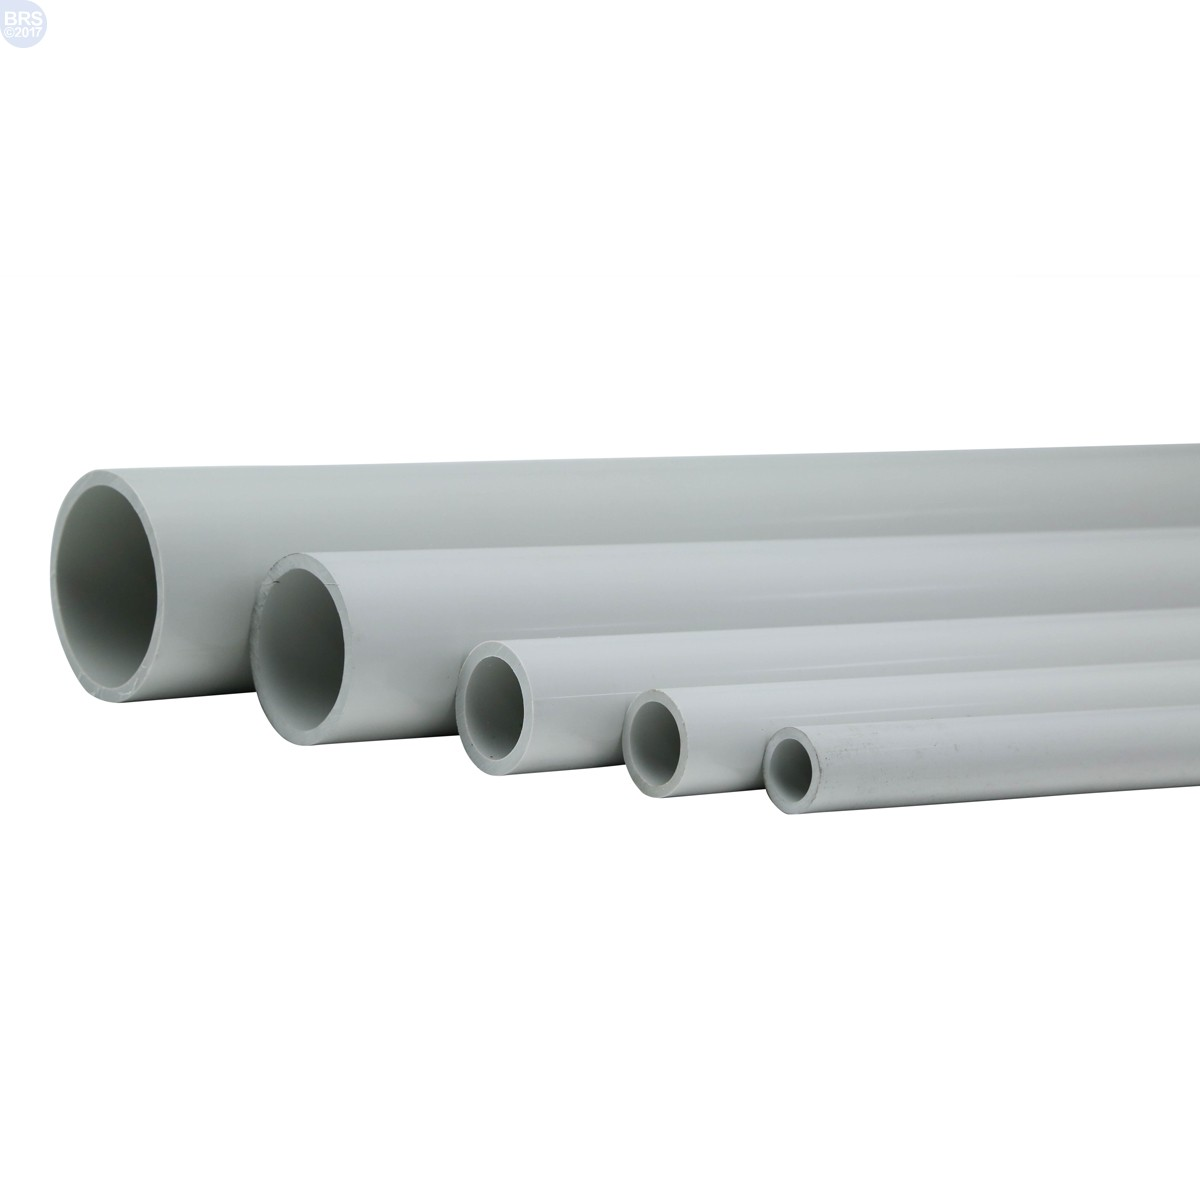 grey furniture grade schedule 40 pipe 5 ft